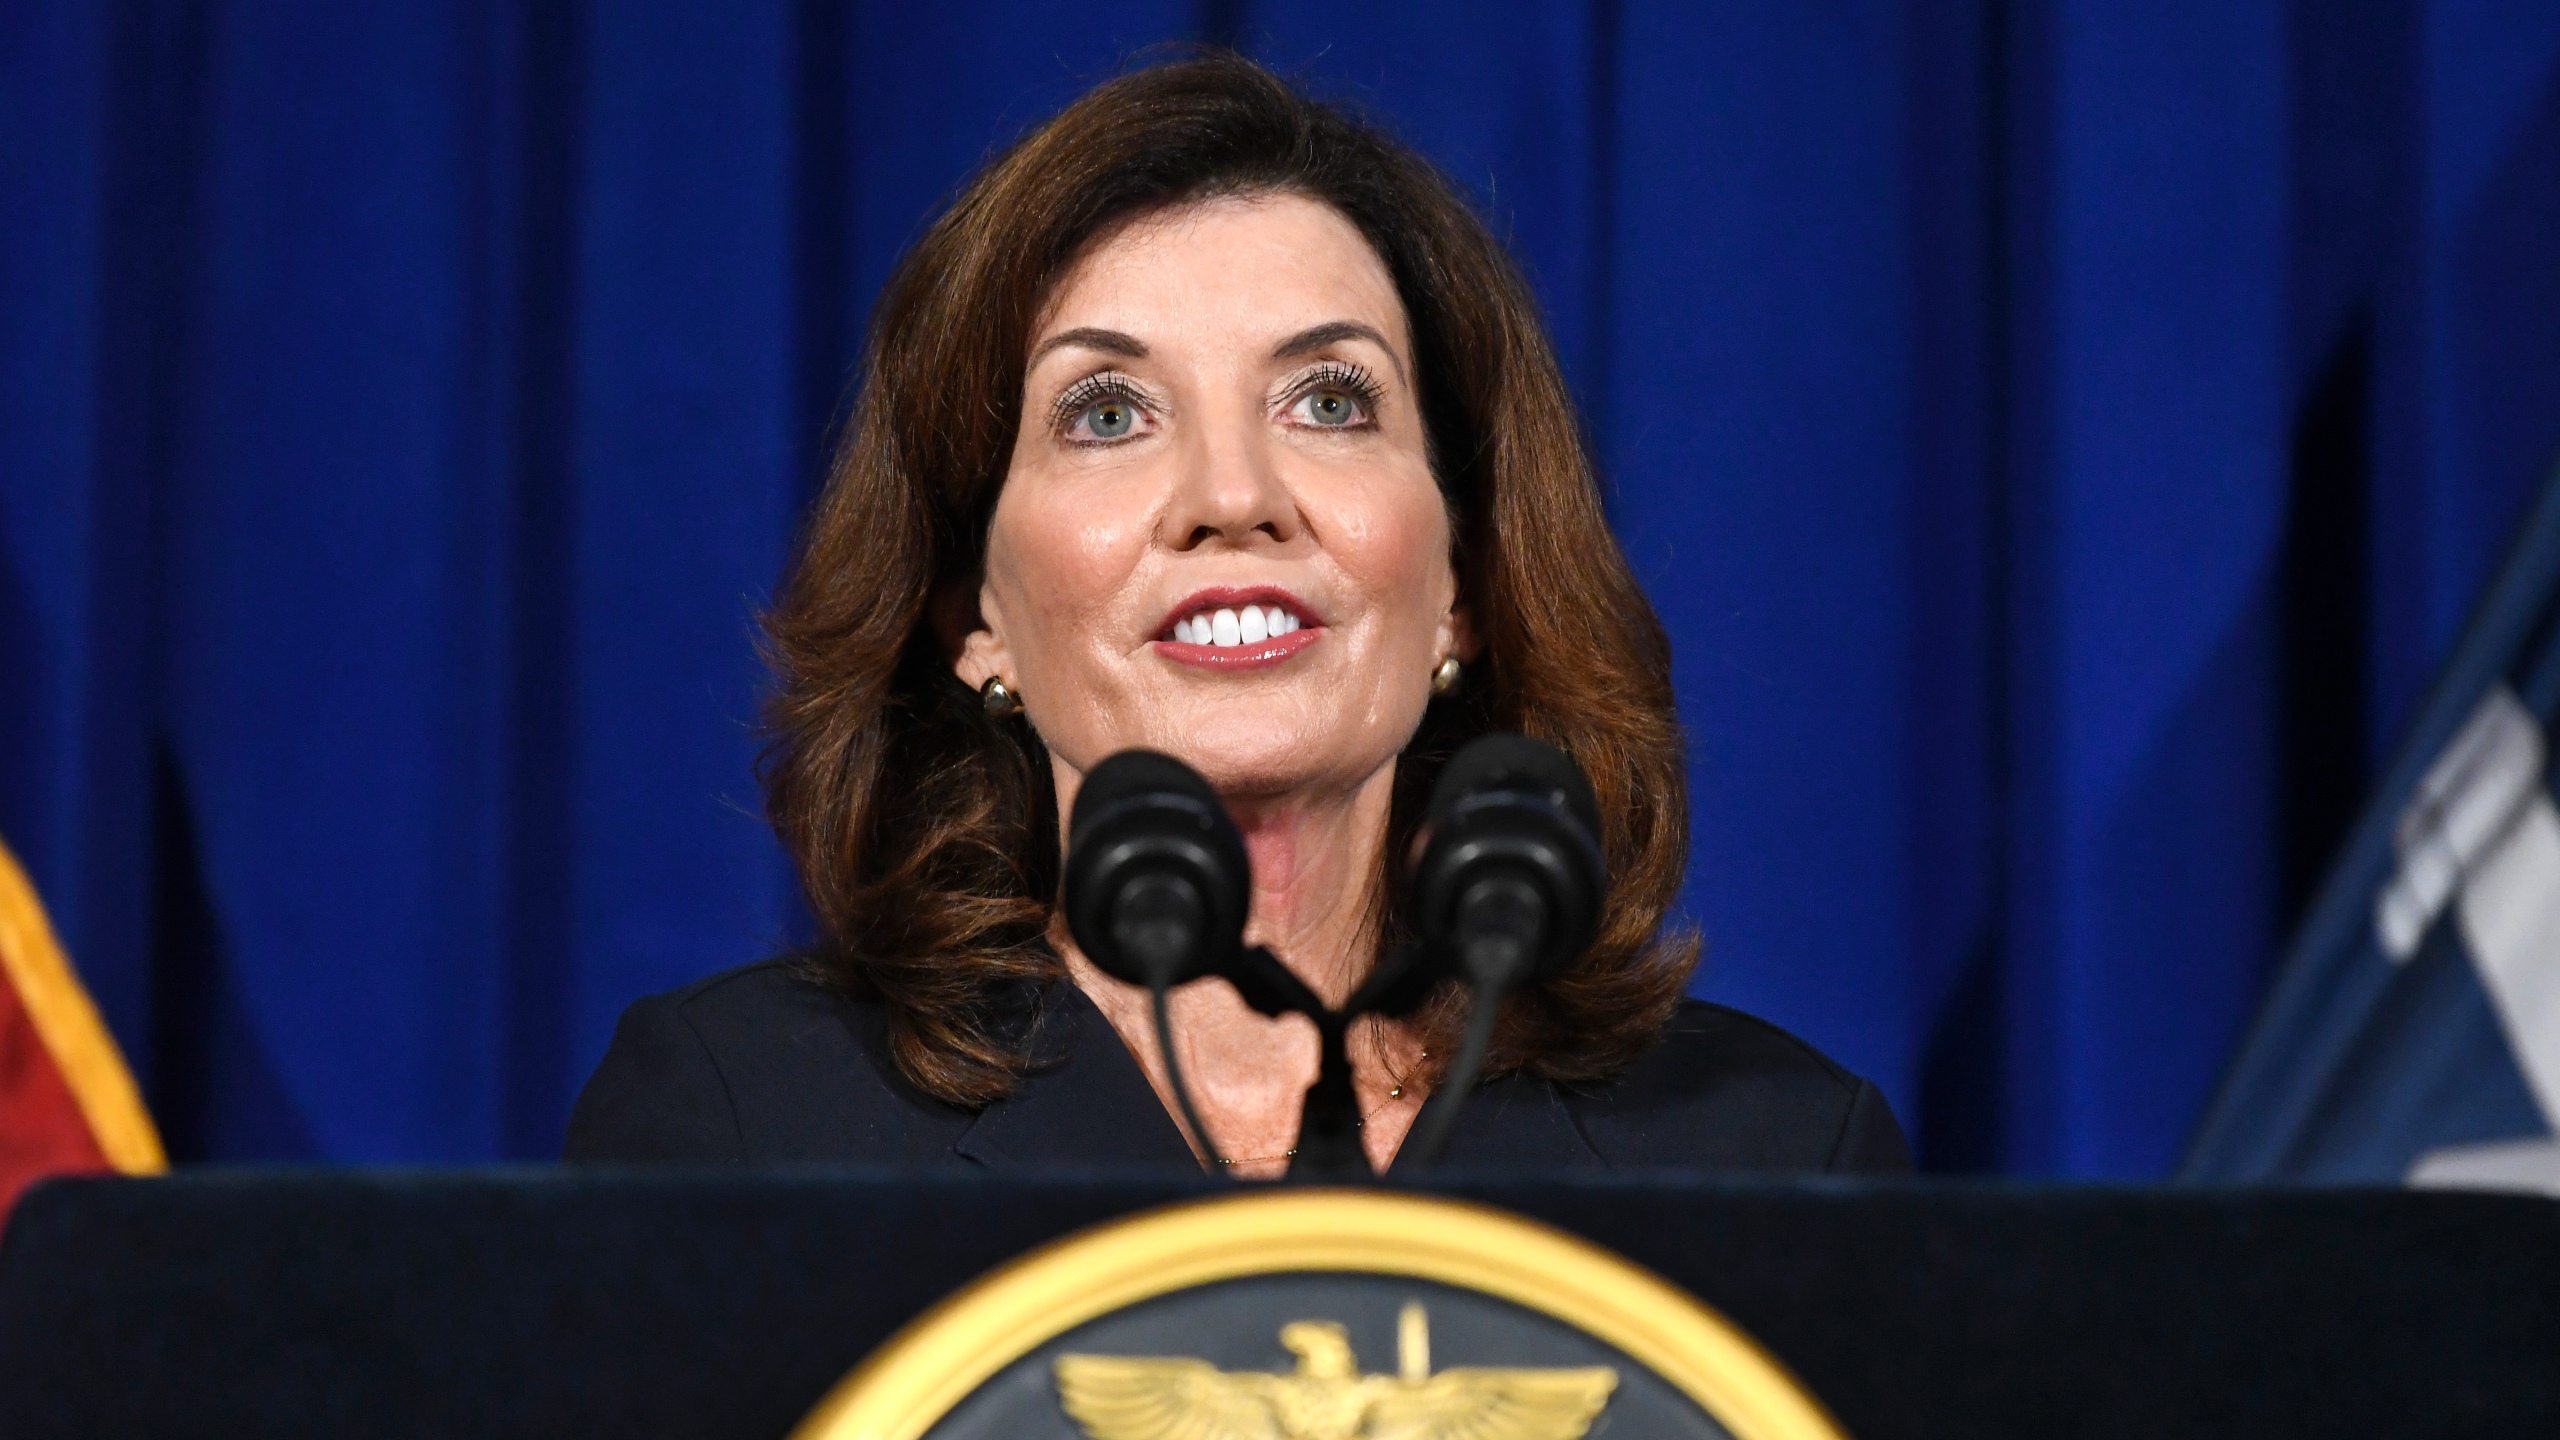 New York Lt. Gov. Kathy Hochul gives a news conference at the state Capitol on Wednesday, Aug. 11, 2021, in Albany, N.Y. Taking over on short notice for a scandal-plagued predecessor in the midst of the coronavirus pandemic, Hochul began her tenure as New York governor Tuesday, Aug. 24 with more than enough challenges for a new administration. She also began with a historic opportunity: Hochul is the first woman to hold one of the most prominent governorships in the U.S. (AP Photo/Hans Pennink, File)